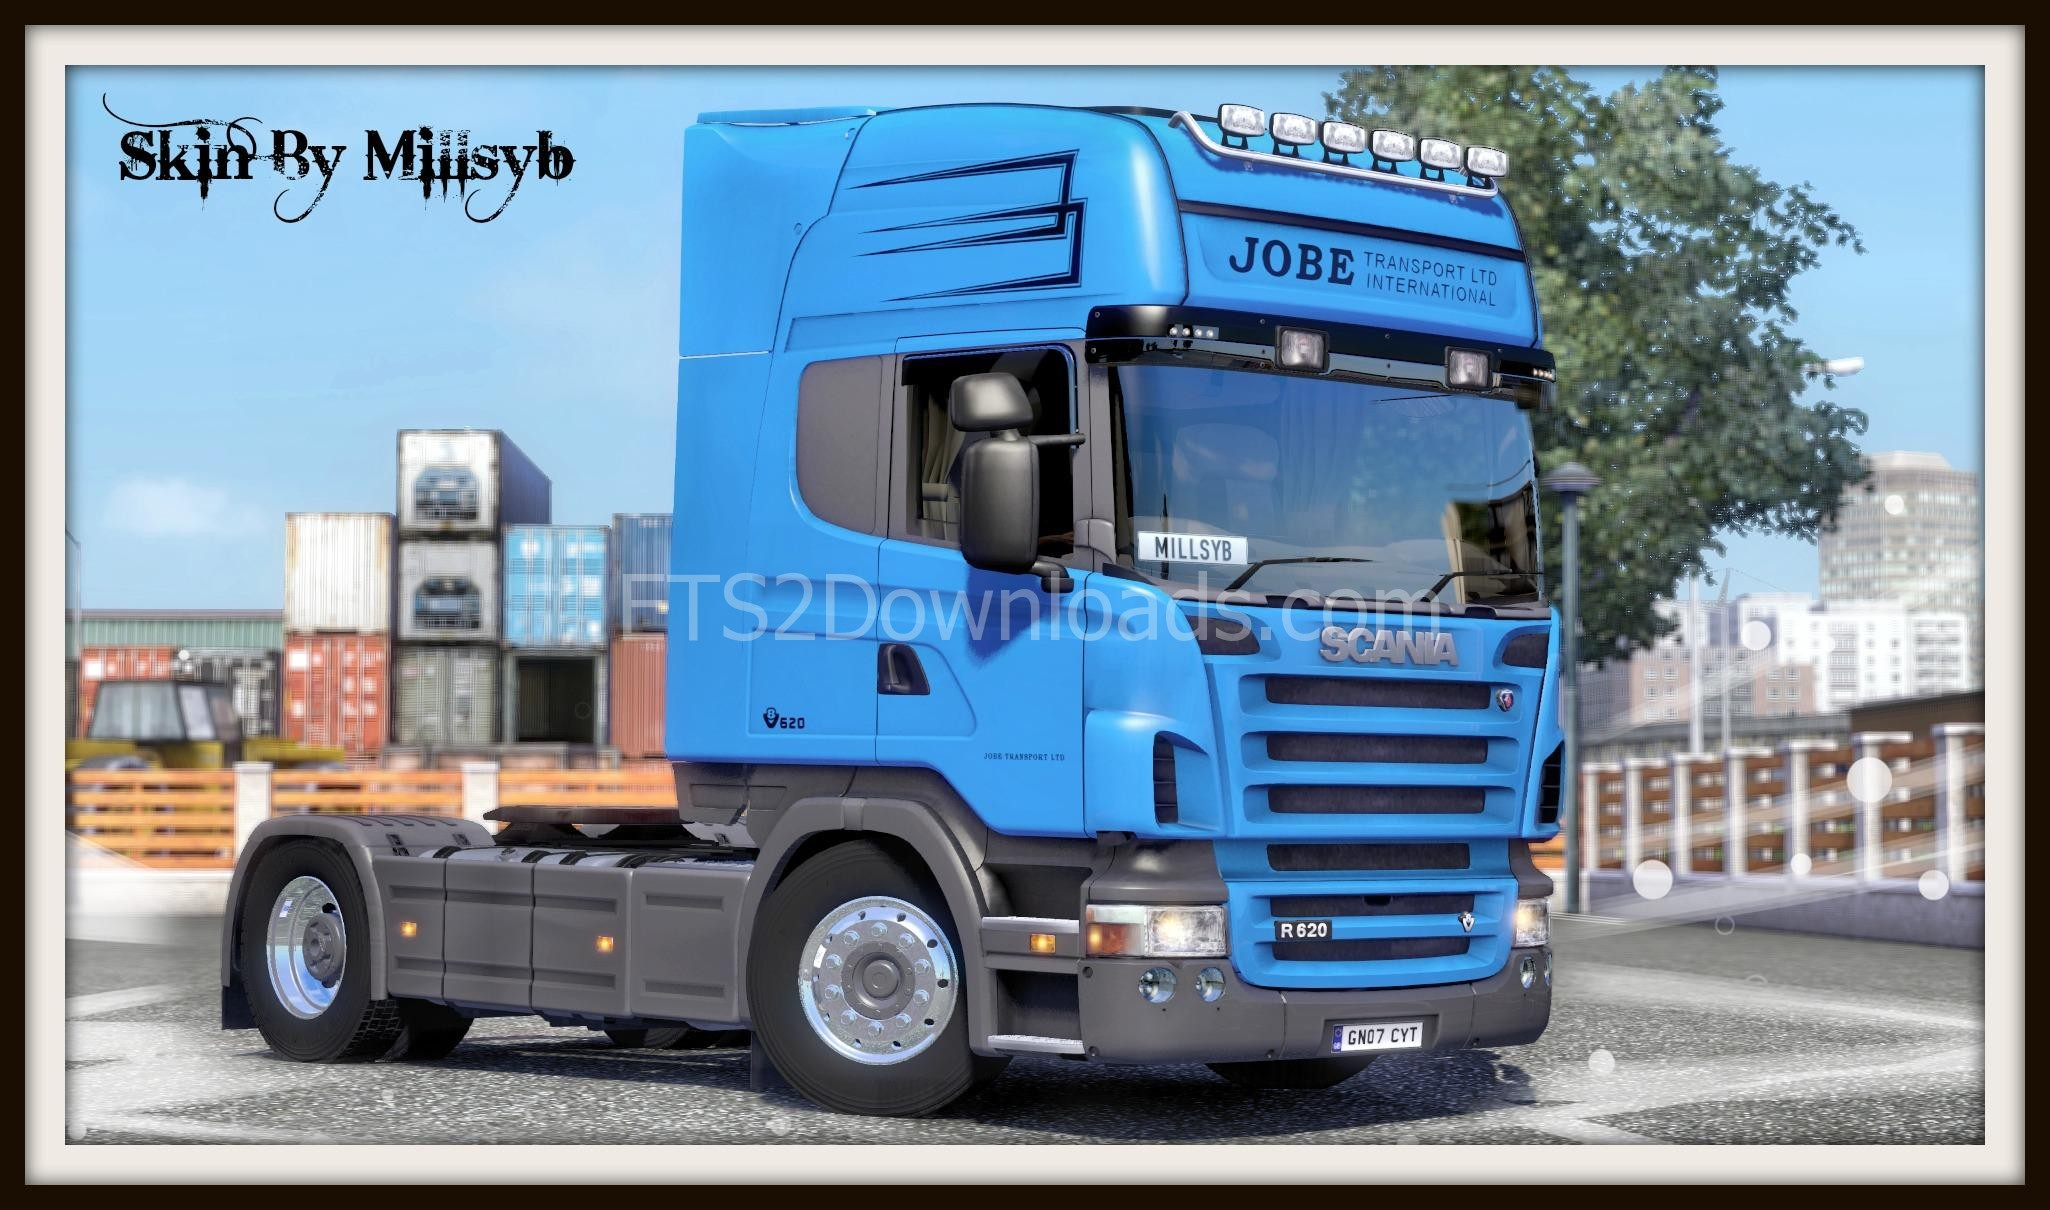 jobe-transport-ltd-skin-for-scania-ets2